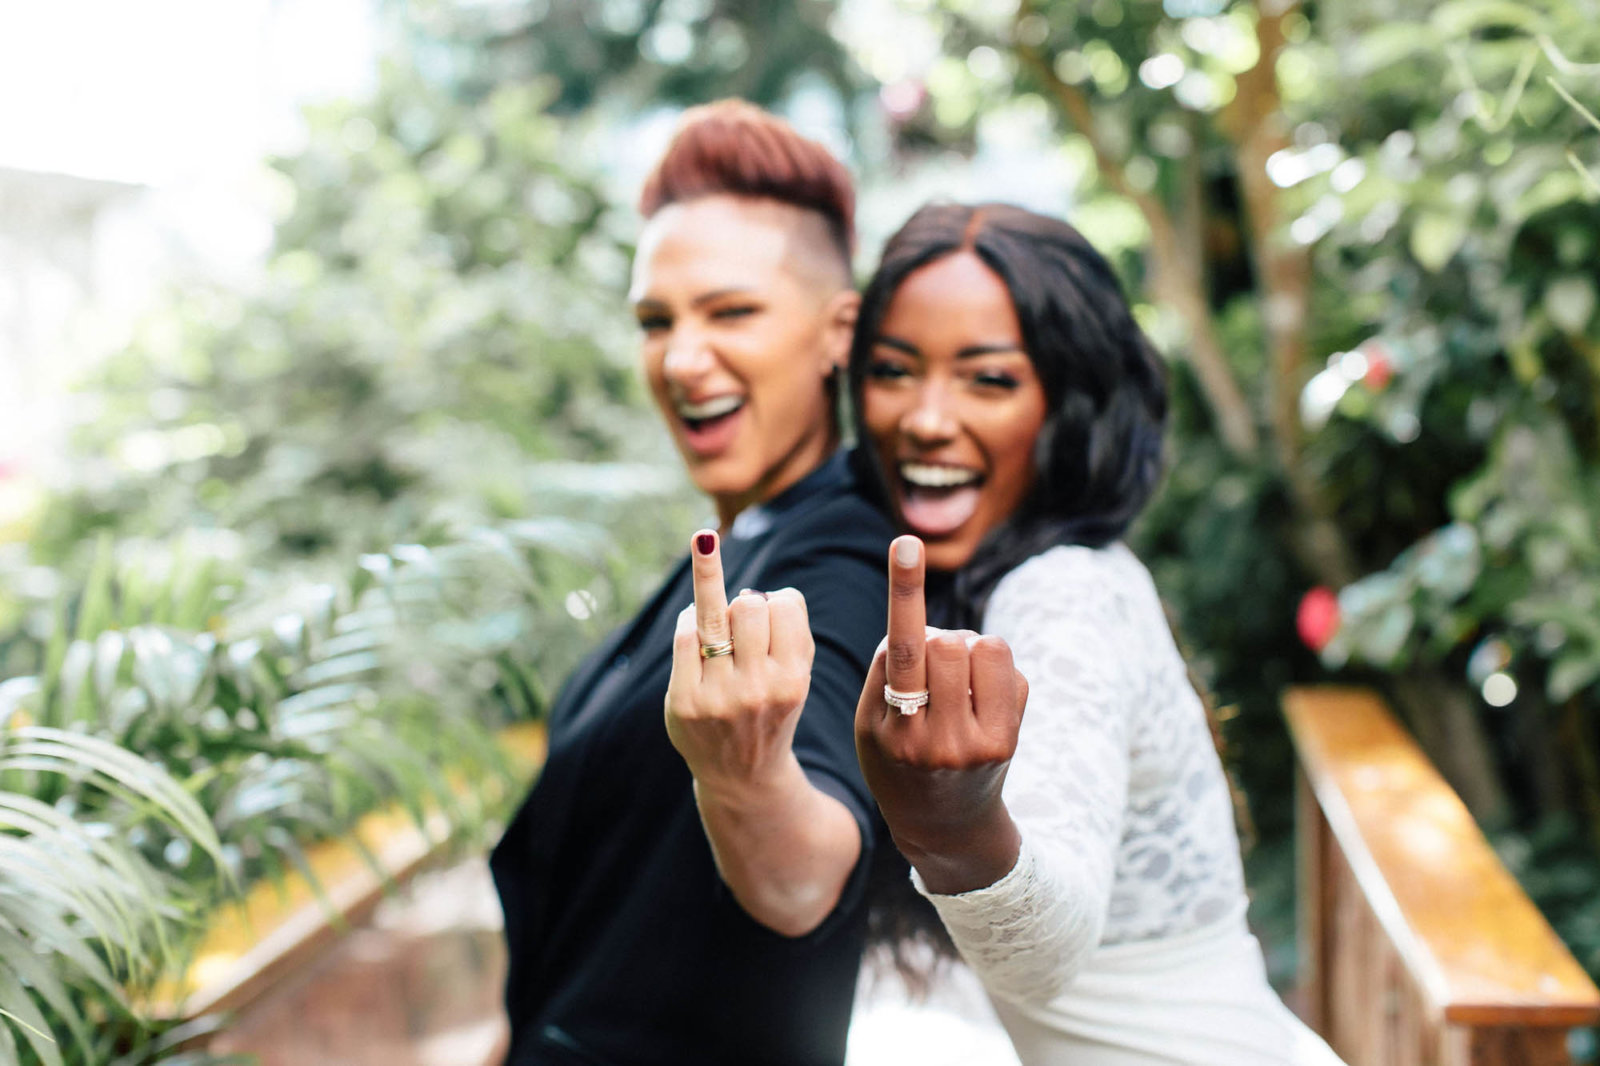 Black queer lesbian - Florida Wedding Photogrpahy - Dancing With Her